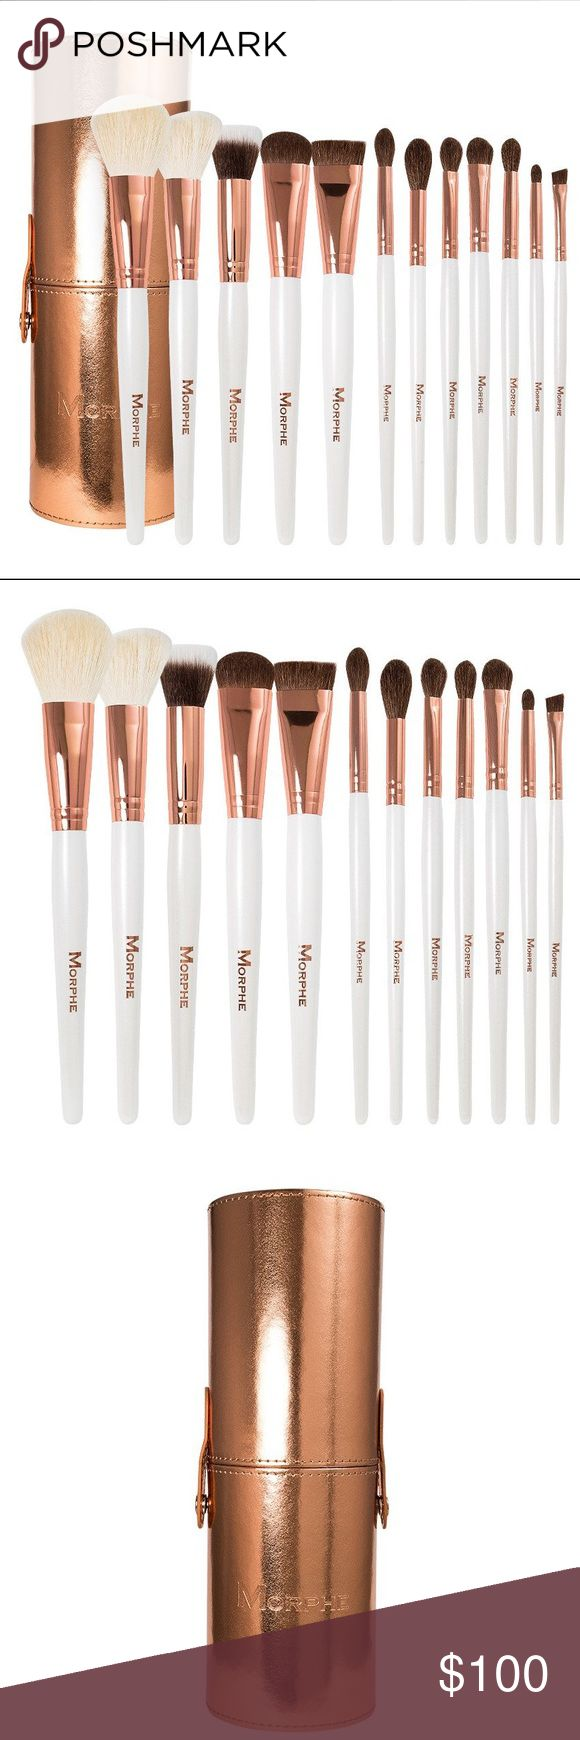 """MORPHE 12PC 707 ROSE GOLD COPPER DREAMS BRUSH SET The striking rose gold ferrules, white handles, and glamorous rose gold brush case bring performance and beauty together in a go-to set for any makeup lover.  Powder Brush 8""""  Angle Blush Brush 7 3/4""""  Duo Fiber Foundation Brush 7.5""""  Deluxe Shadow Brush 7 1/4"""" 1"""" Flat Contour Brush 6.5"""" Blender Brush 7 3/8""""  Deluxe Highlight Brush 7.5""""  Firm Blending Fluff 7 1/4""""  Round Blender Brush 7 3/8""""  Eye shadow Brush 7 1/4""""  Bullet Crease Brush 6…"""